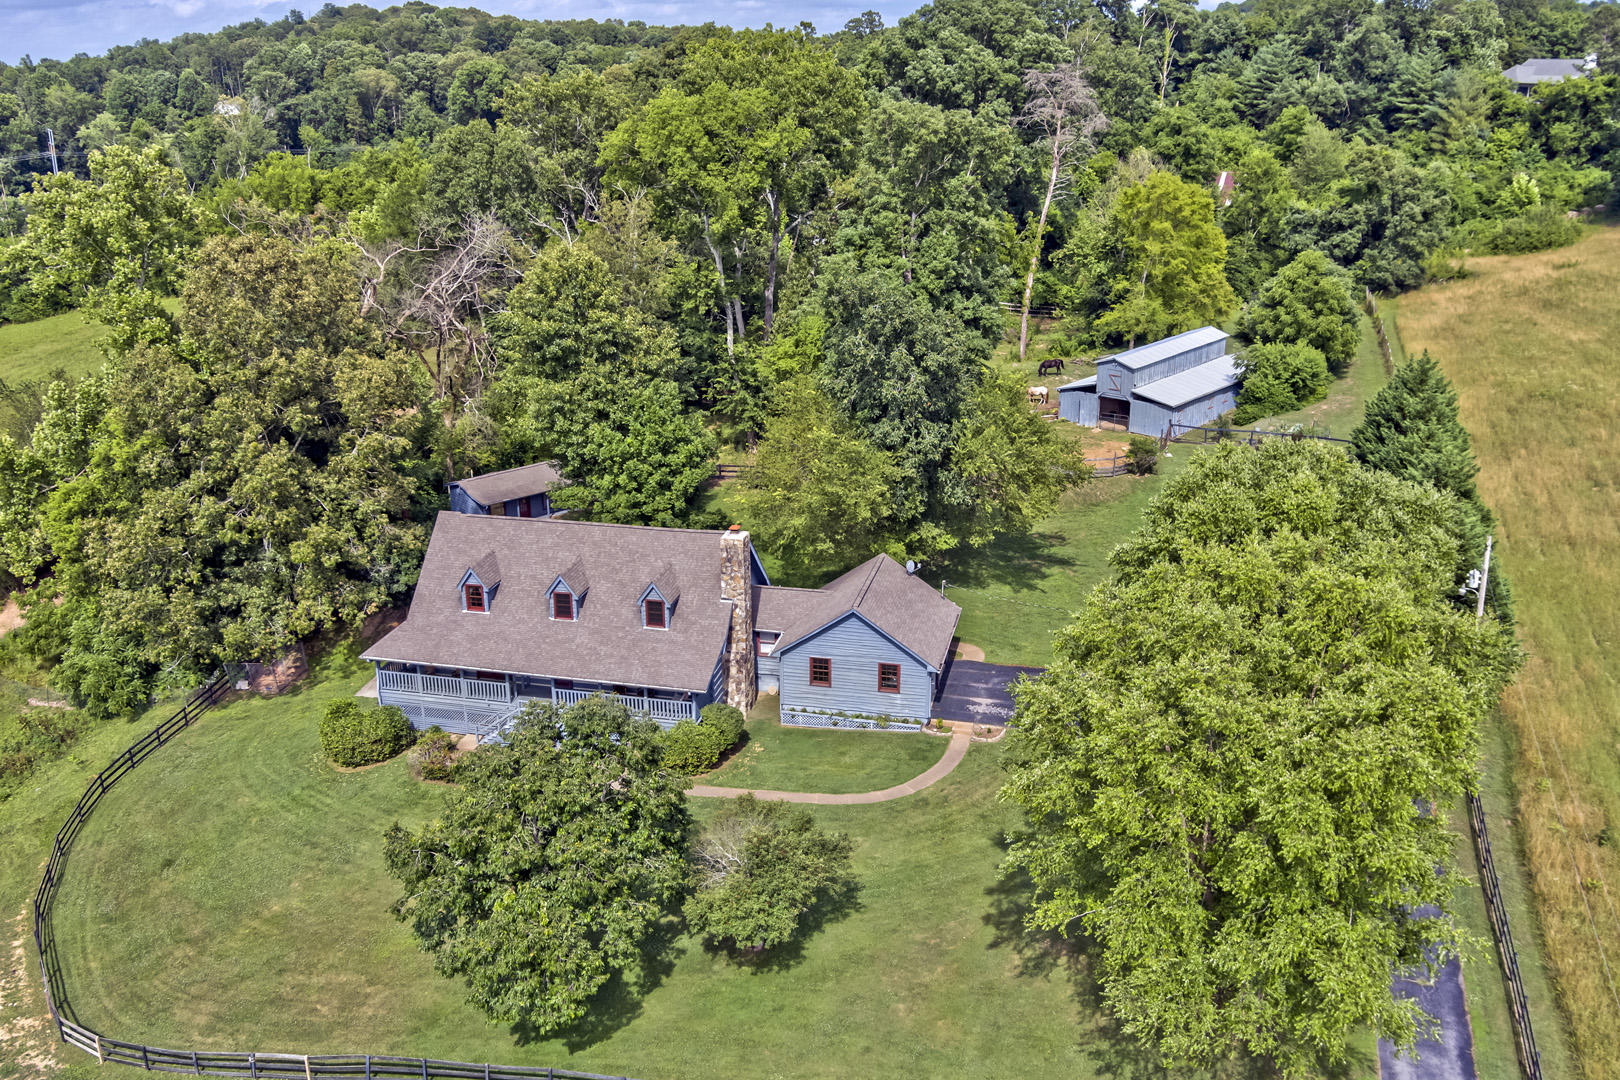 5936 Williams Ferry Rd, Lenoir City, Tennessee 37771, 4 Bedrooms Bedrooms, ,3 BathroomsBathrooms,Single Family,For Sale,Williams Ferry,1121623